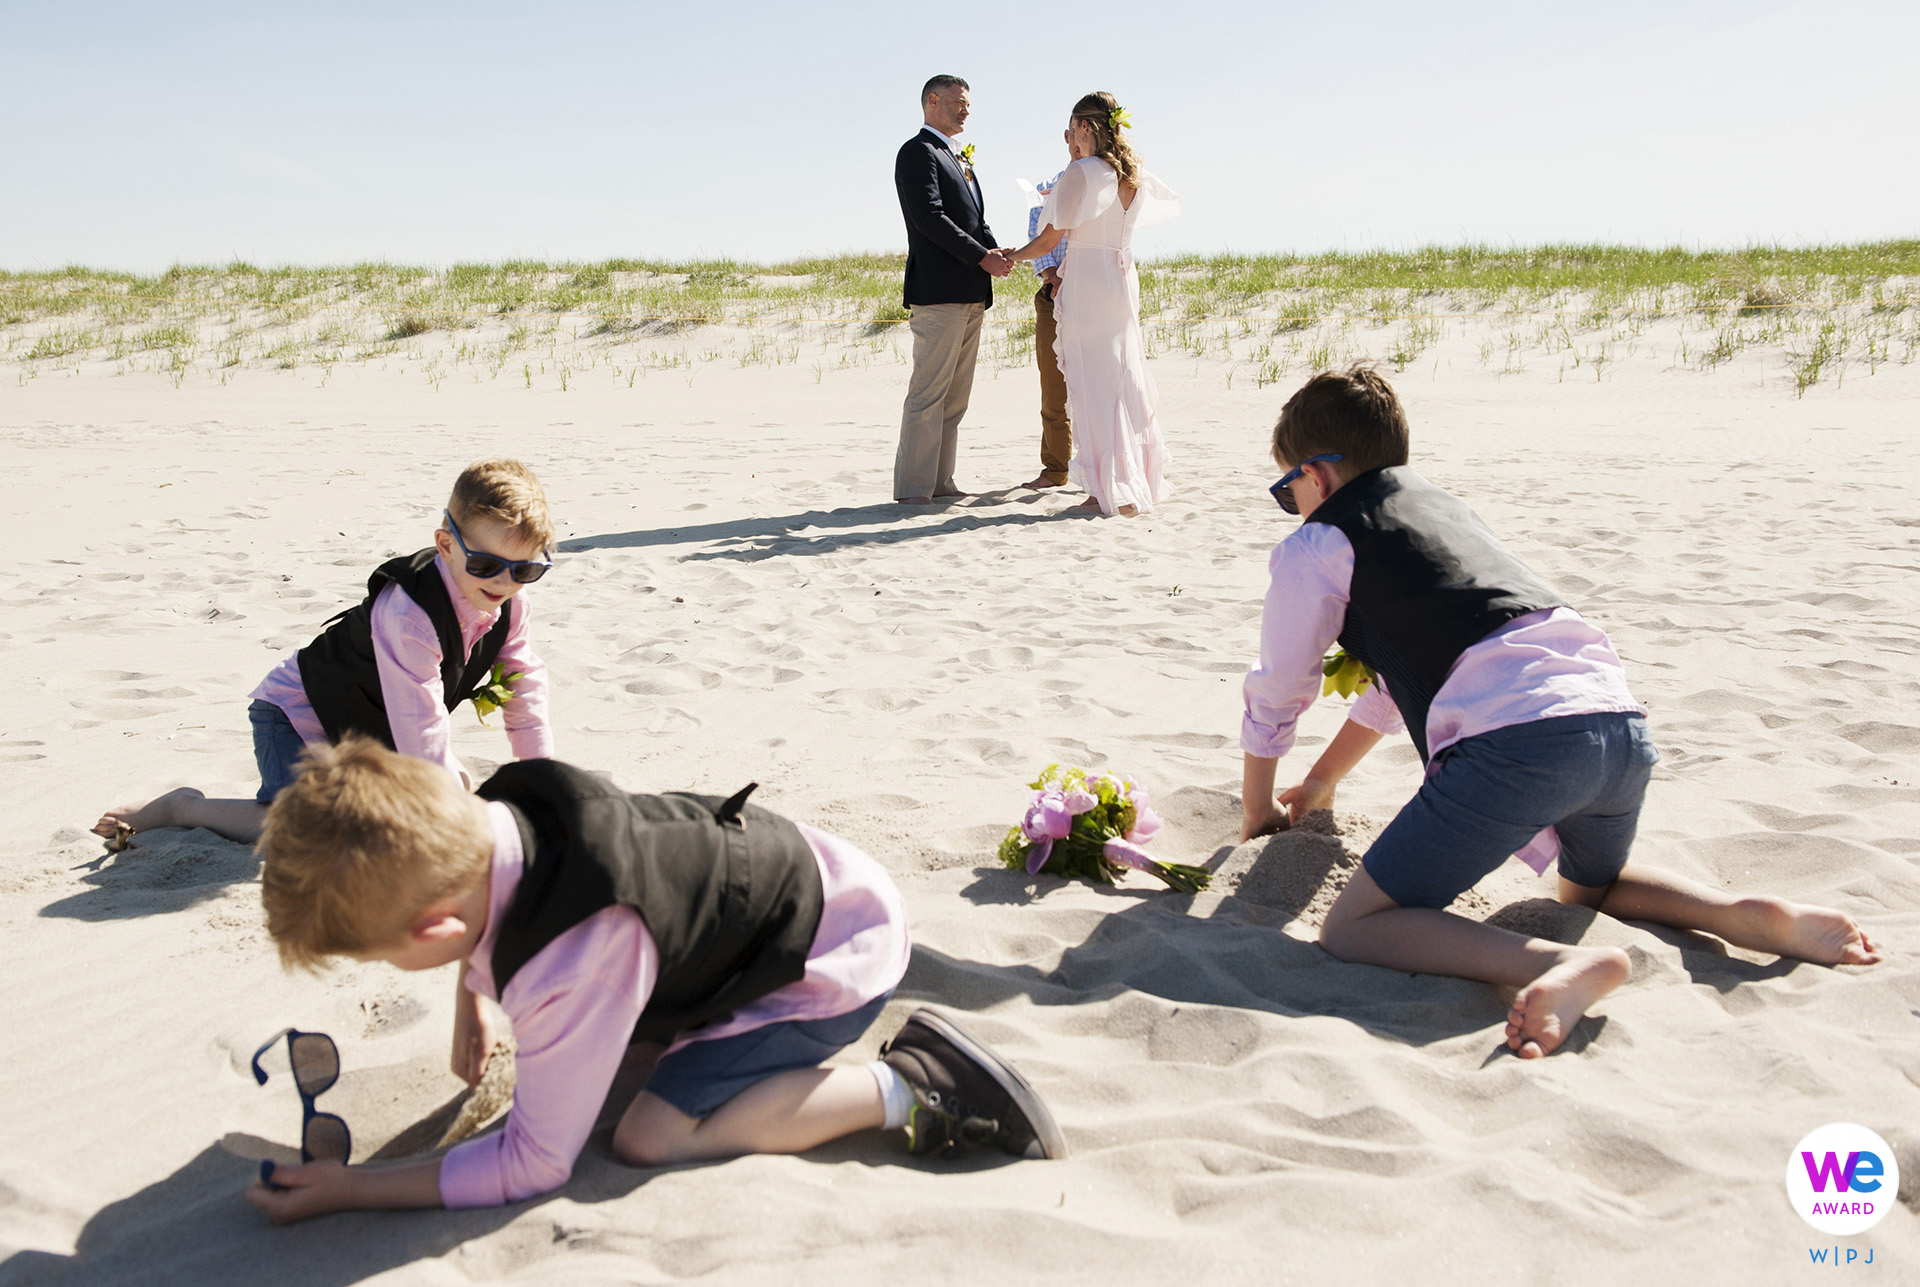 Crane Beach, Ipswich, MA Beach Elopement Ceremony Photo Story   The bride's 3 young boys digging in the sand with the ceremony taking place in the background